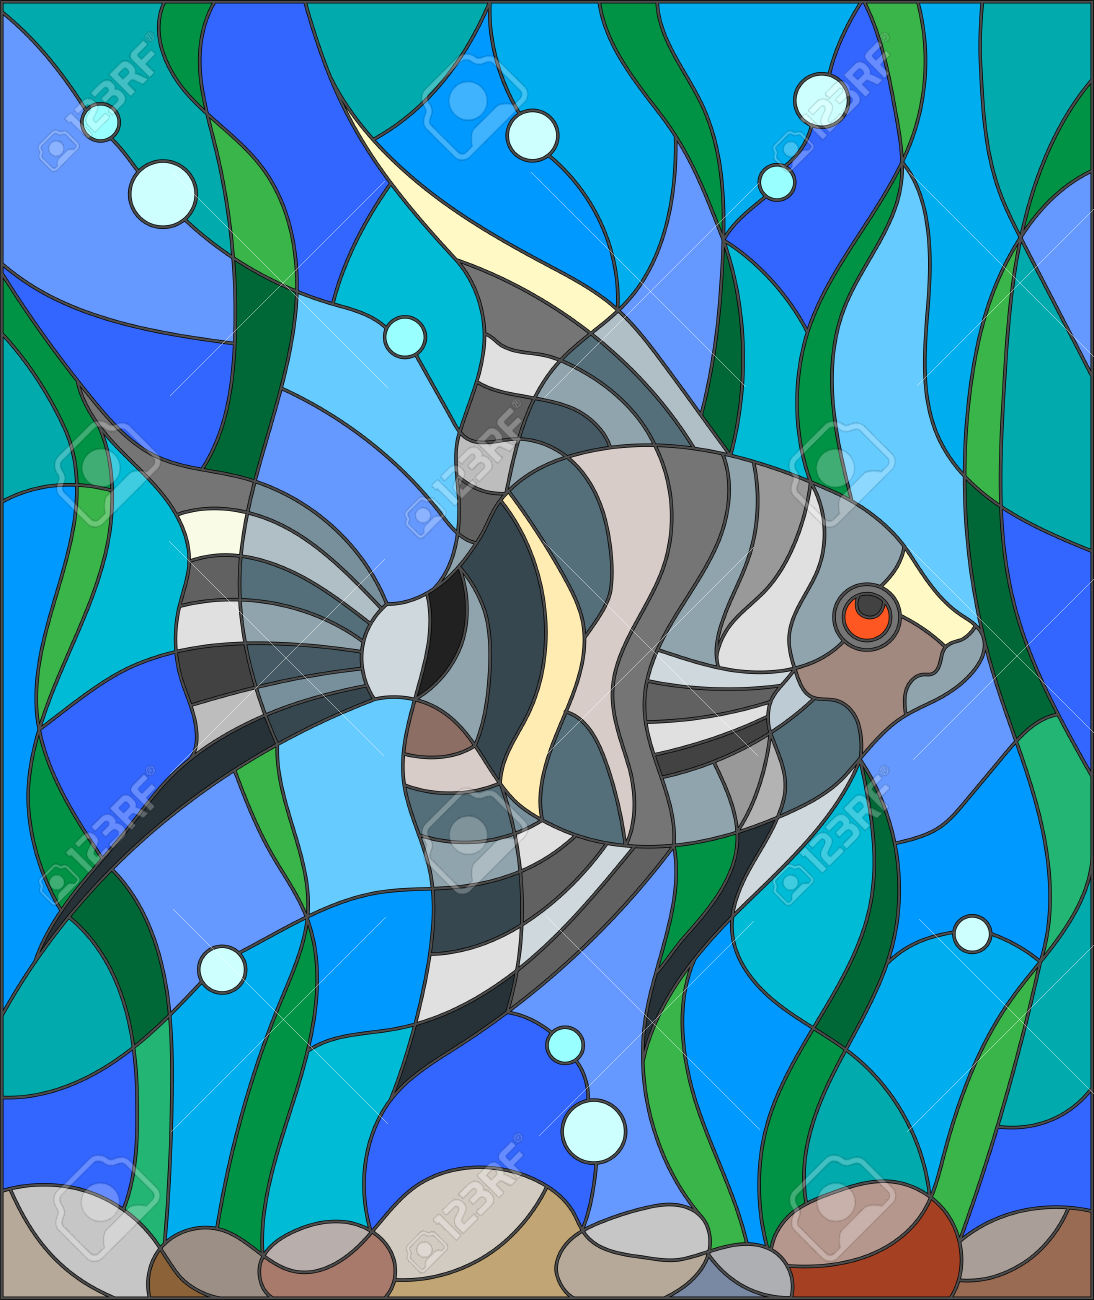 Illustration In Stained Glass Style Fish Scalar On The Background.